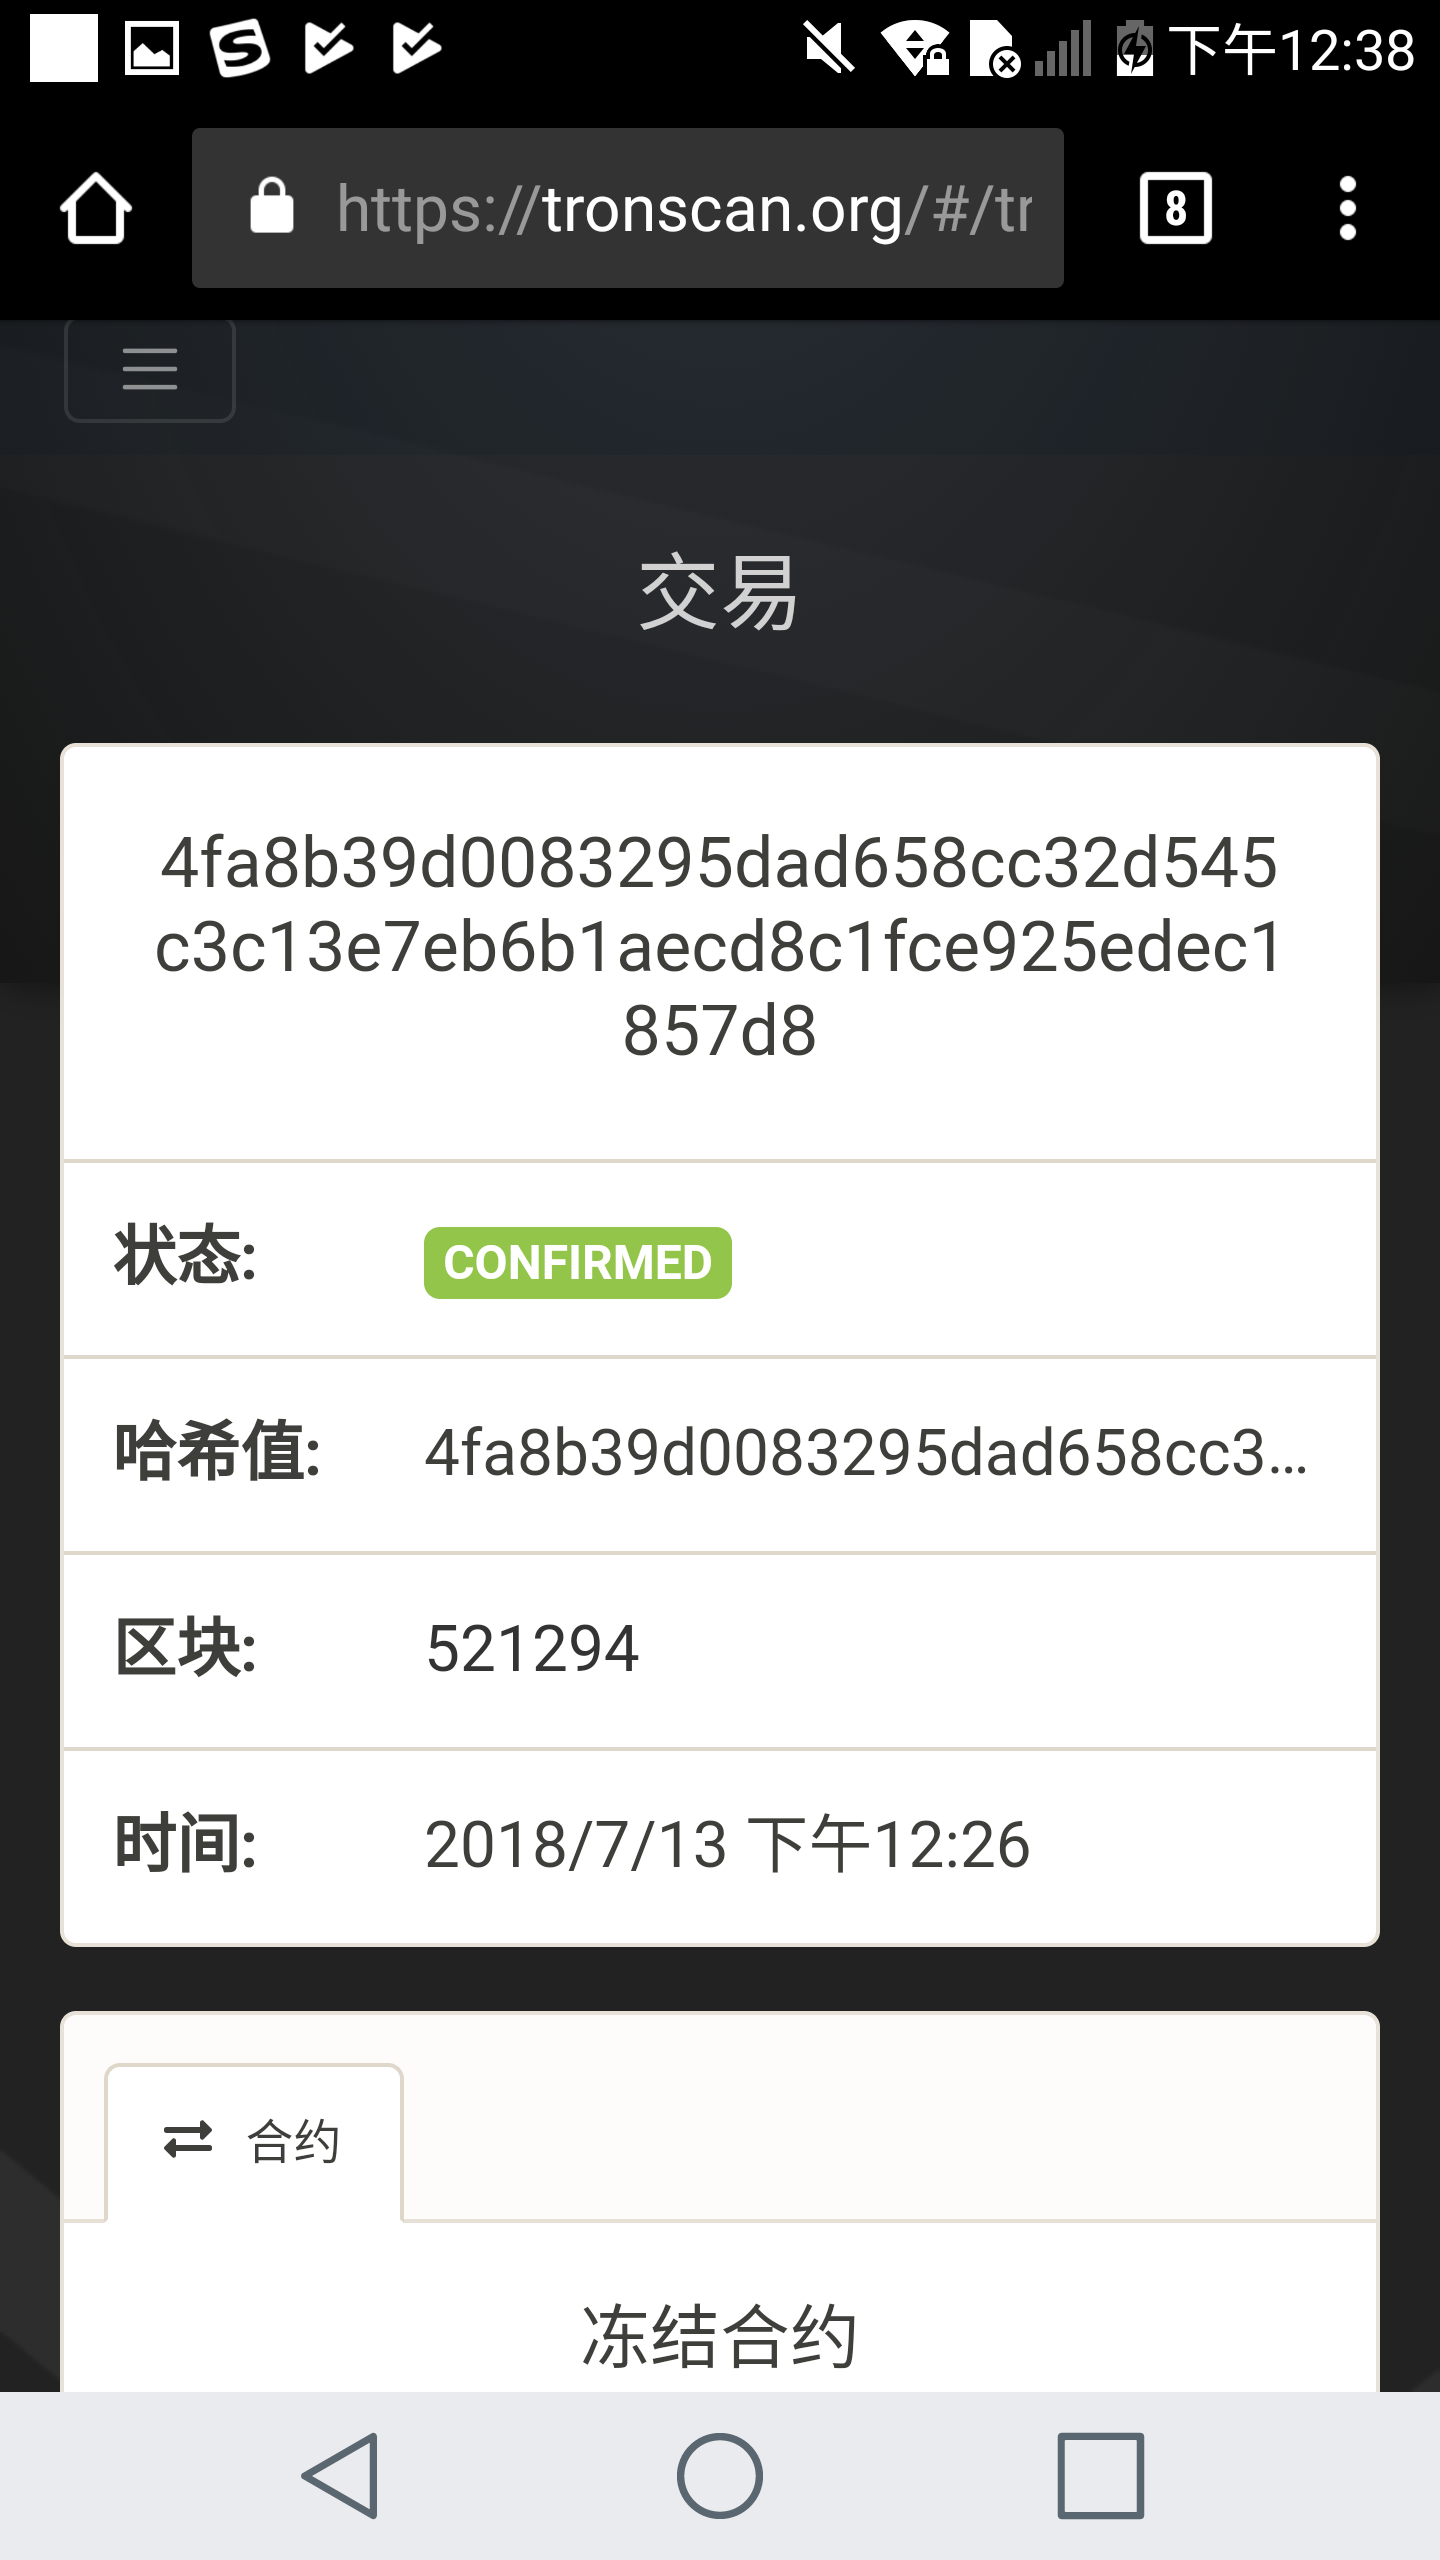 https://raw.githubusercontent.com/tronprotocol/Documentation/master/images/Wallet_for_Android/历史记录/3.tronscan上查看记录.png